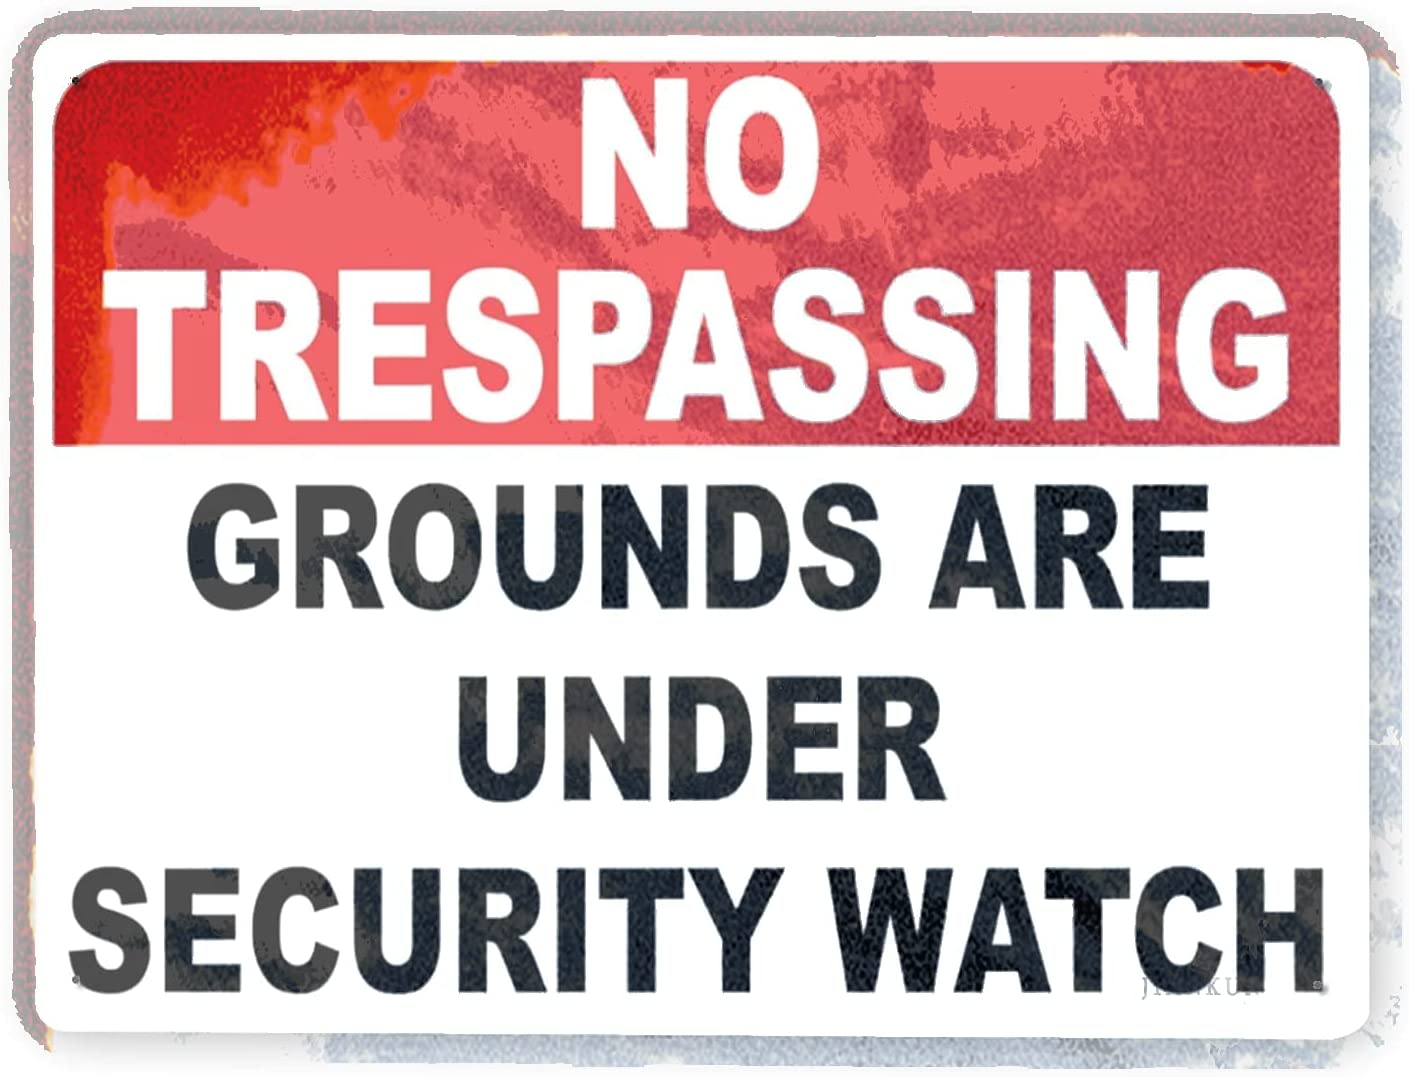 J.DXHYA Man Cave Decor 2 Pieces Grou High quality Max 90% OFF Warning Trespassing no Sign